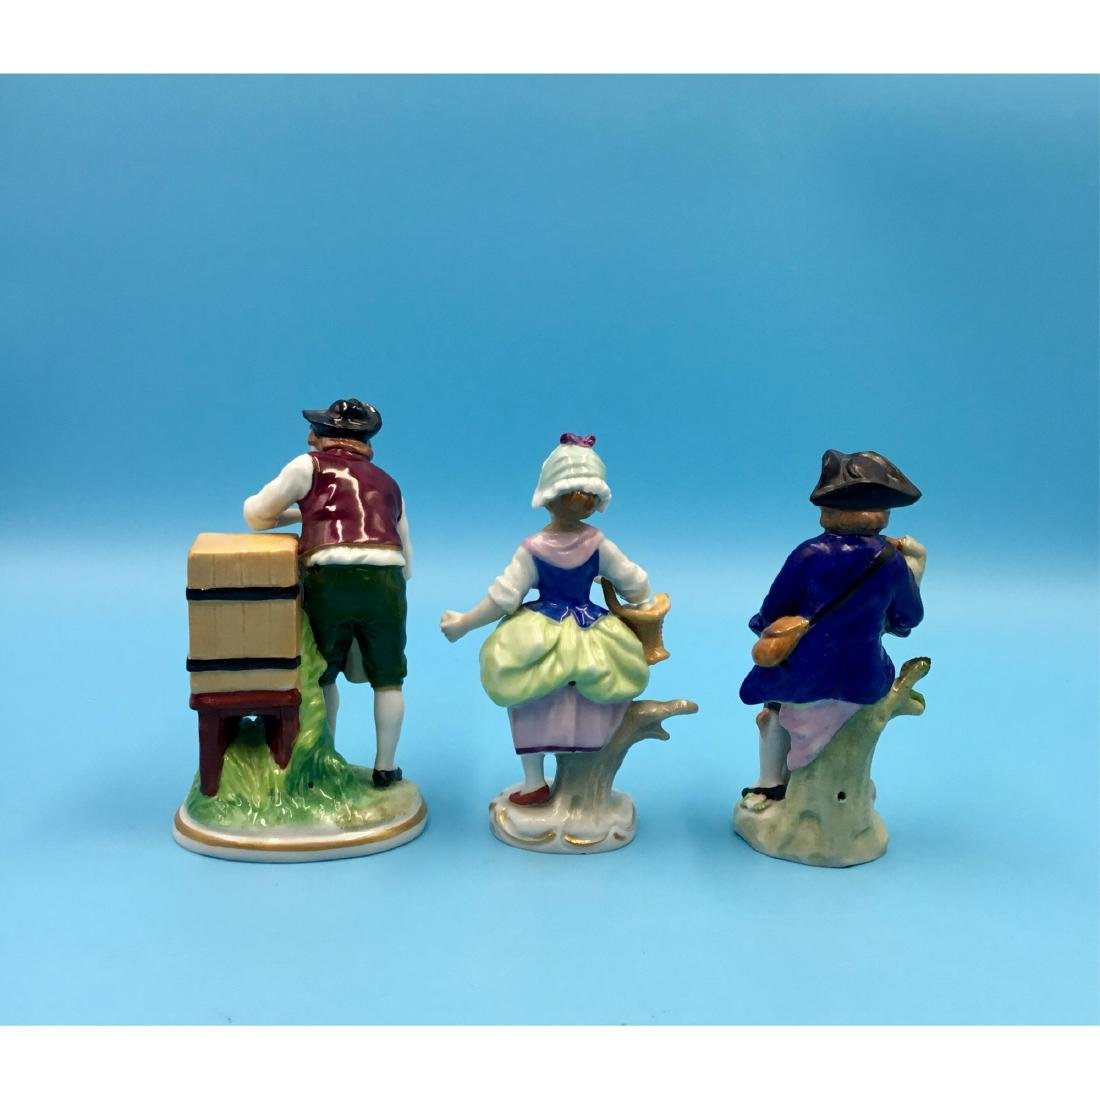 GROUP OF 3 SITZENDORF GERMAN PORCELAIN FIGURINES - 3